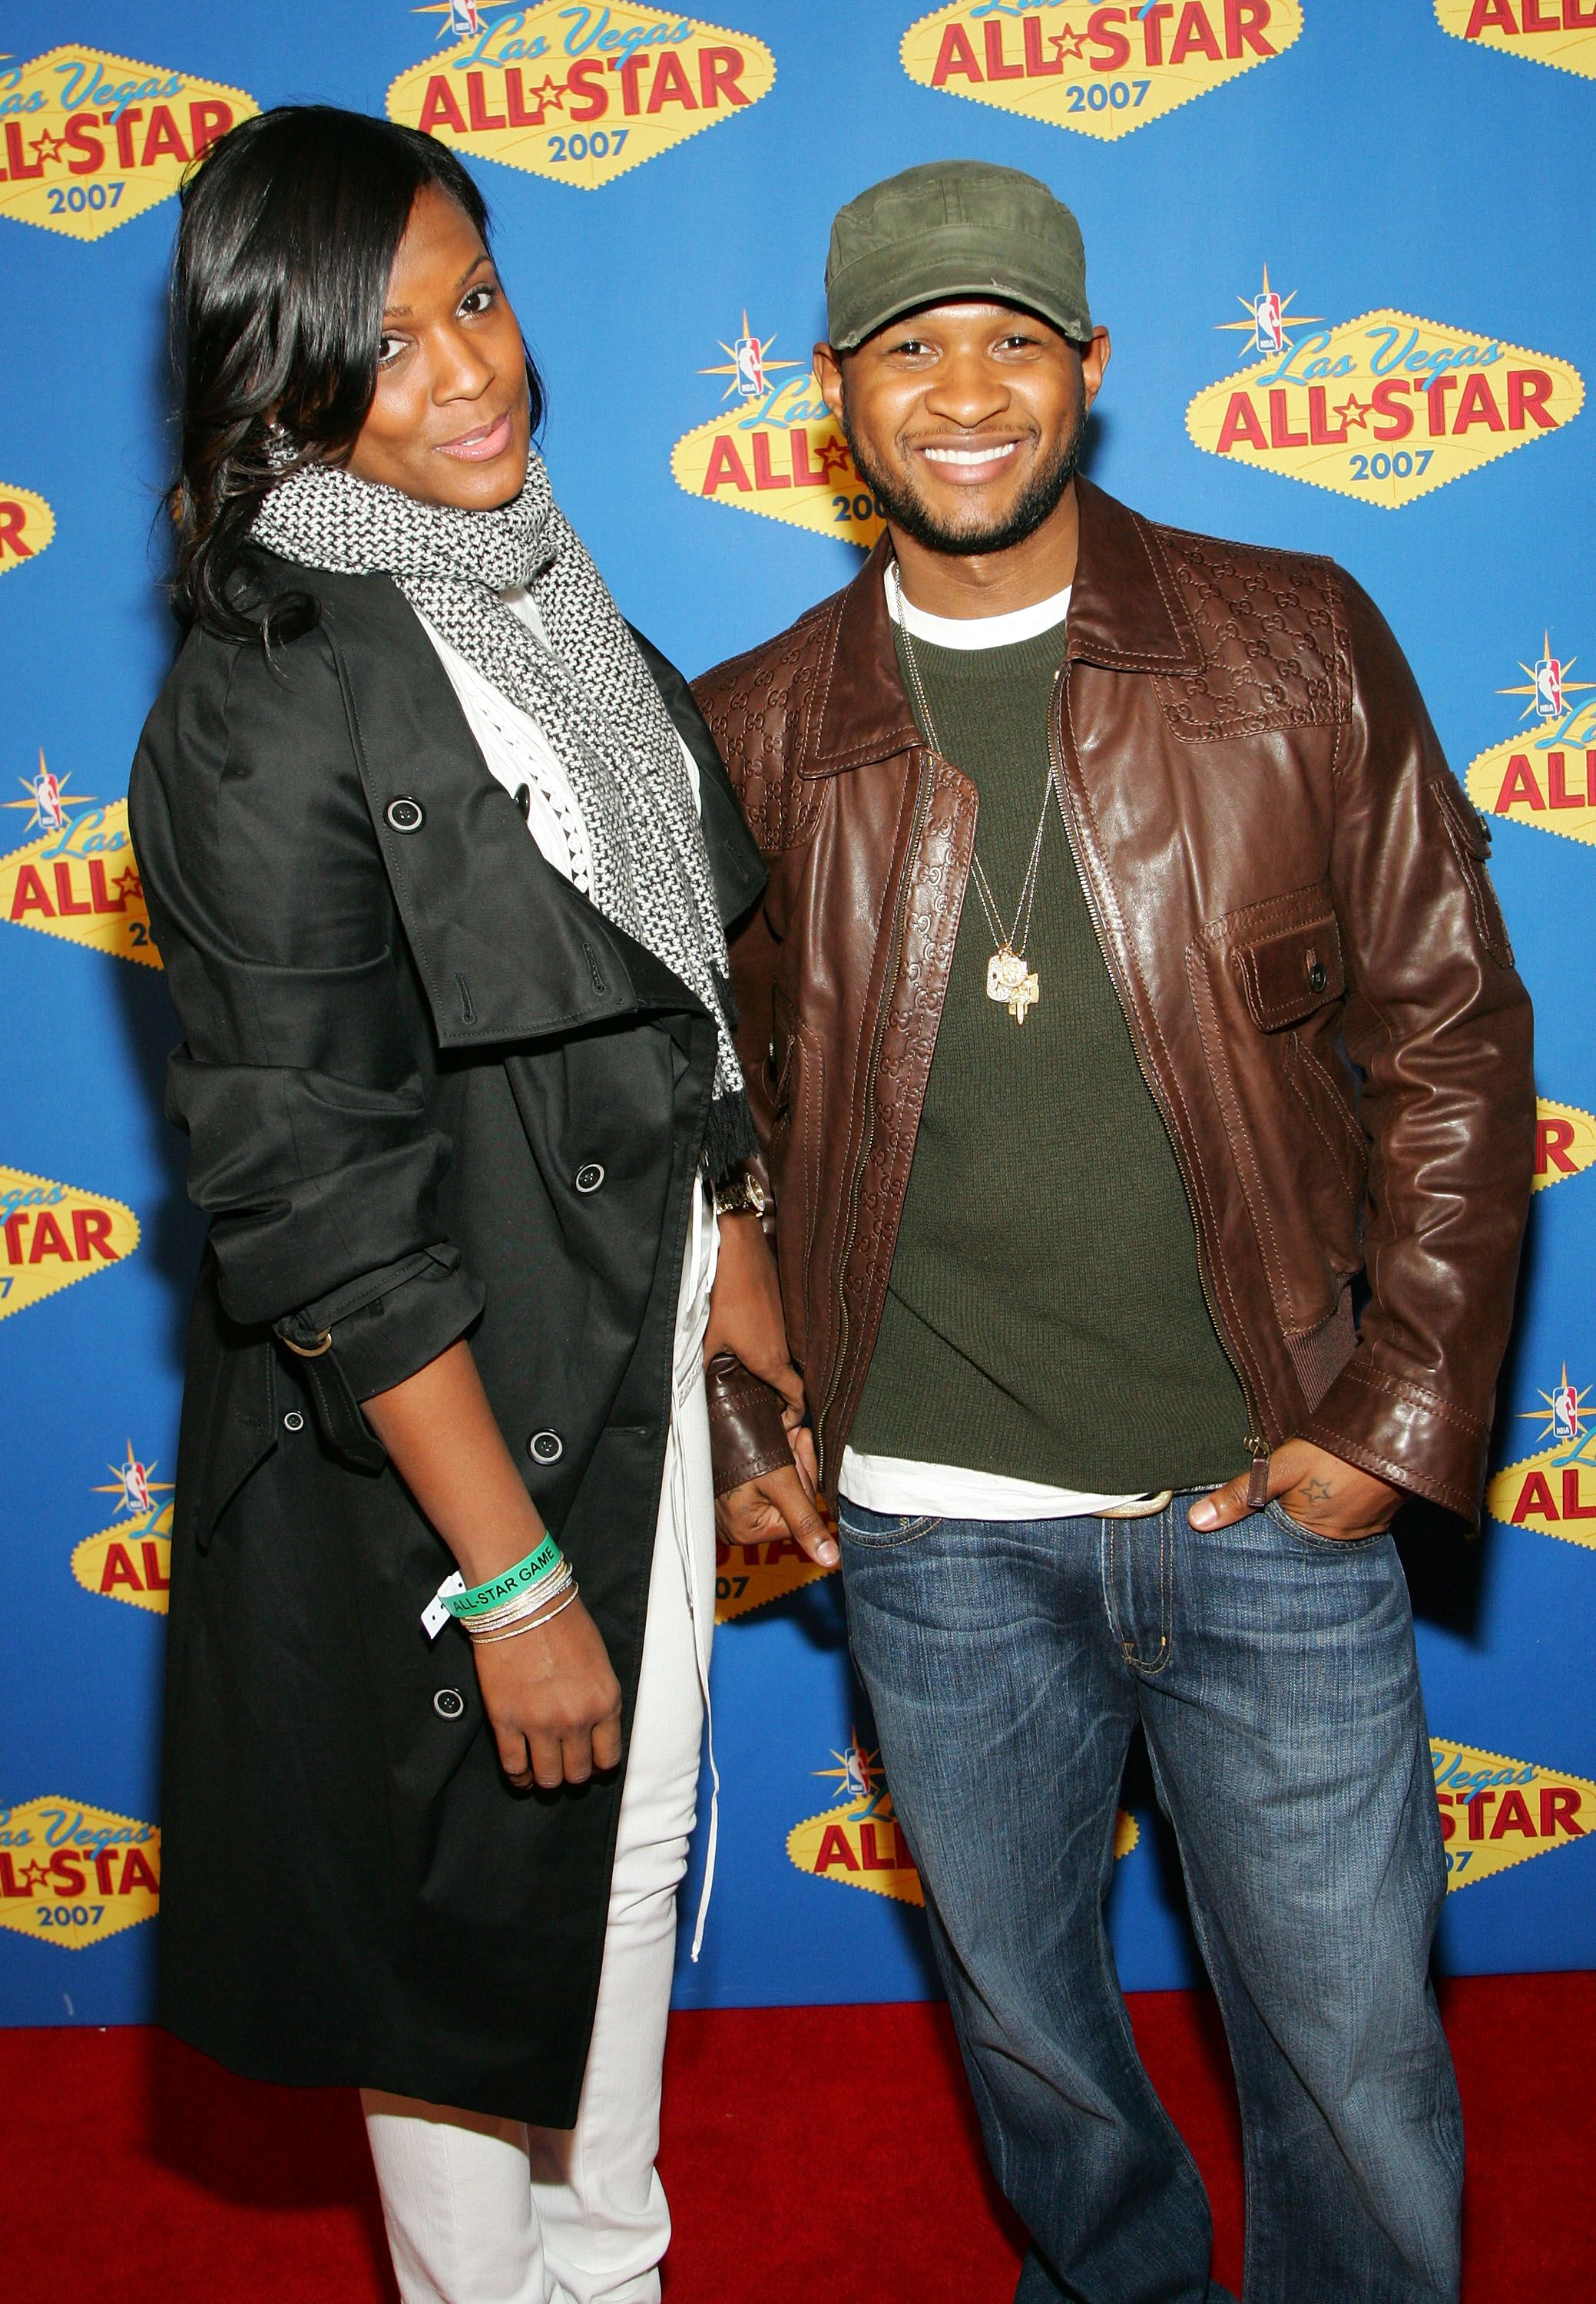 Usher and Tameka Foster during the 2007 NBA All-Star Game at the Thomas & Mack Center on February 18, 2007 in Las Vegas, Nevada. | Source: Getty Images